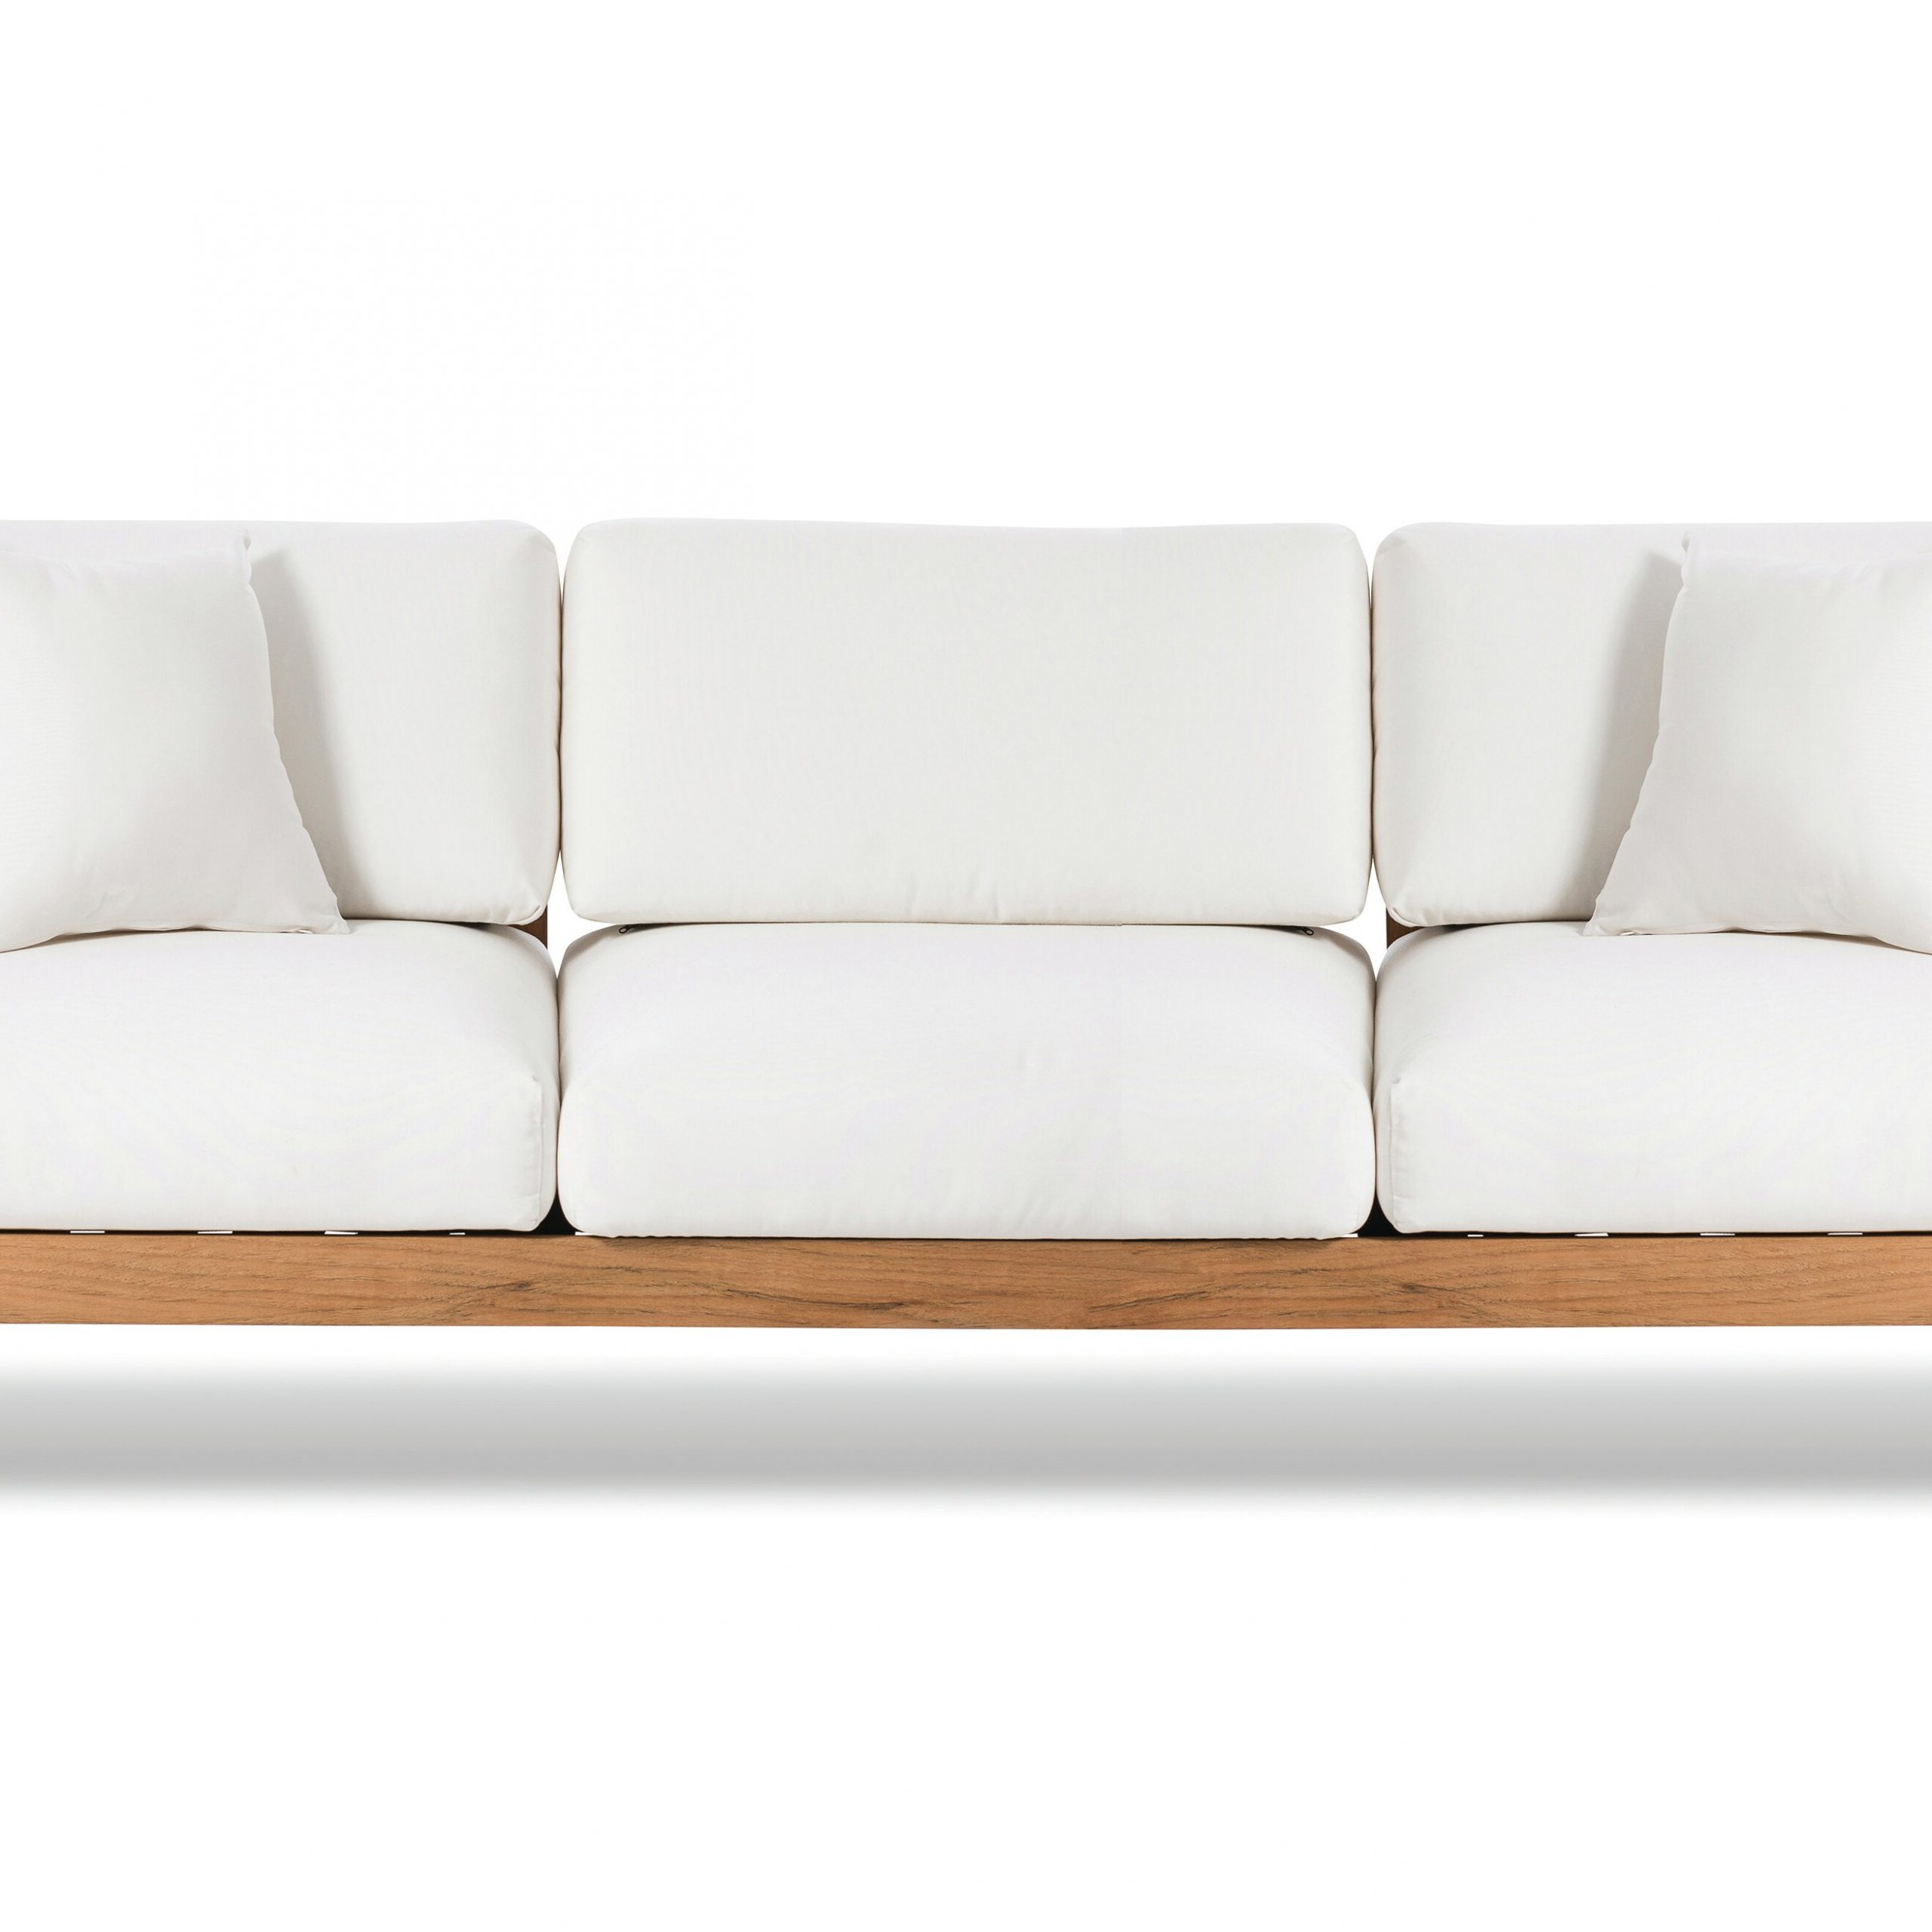 Maro Teak Patio Sofa With Sunbrella Cushions Intended For Well Known O'kean Teak Patio Sofas With Cushions (View 10 of 25)